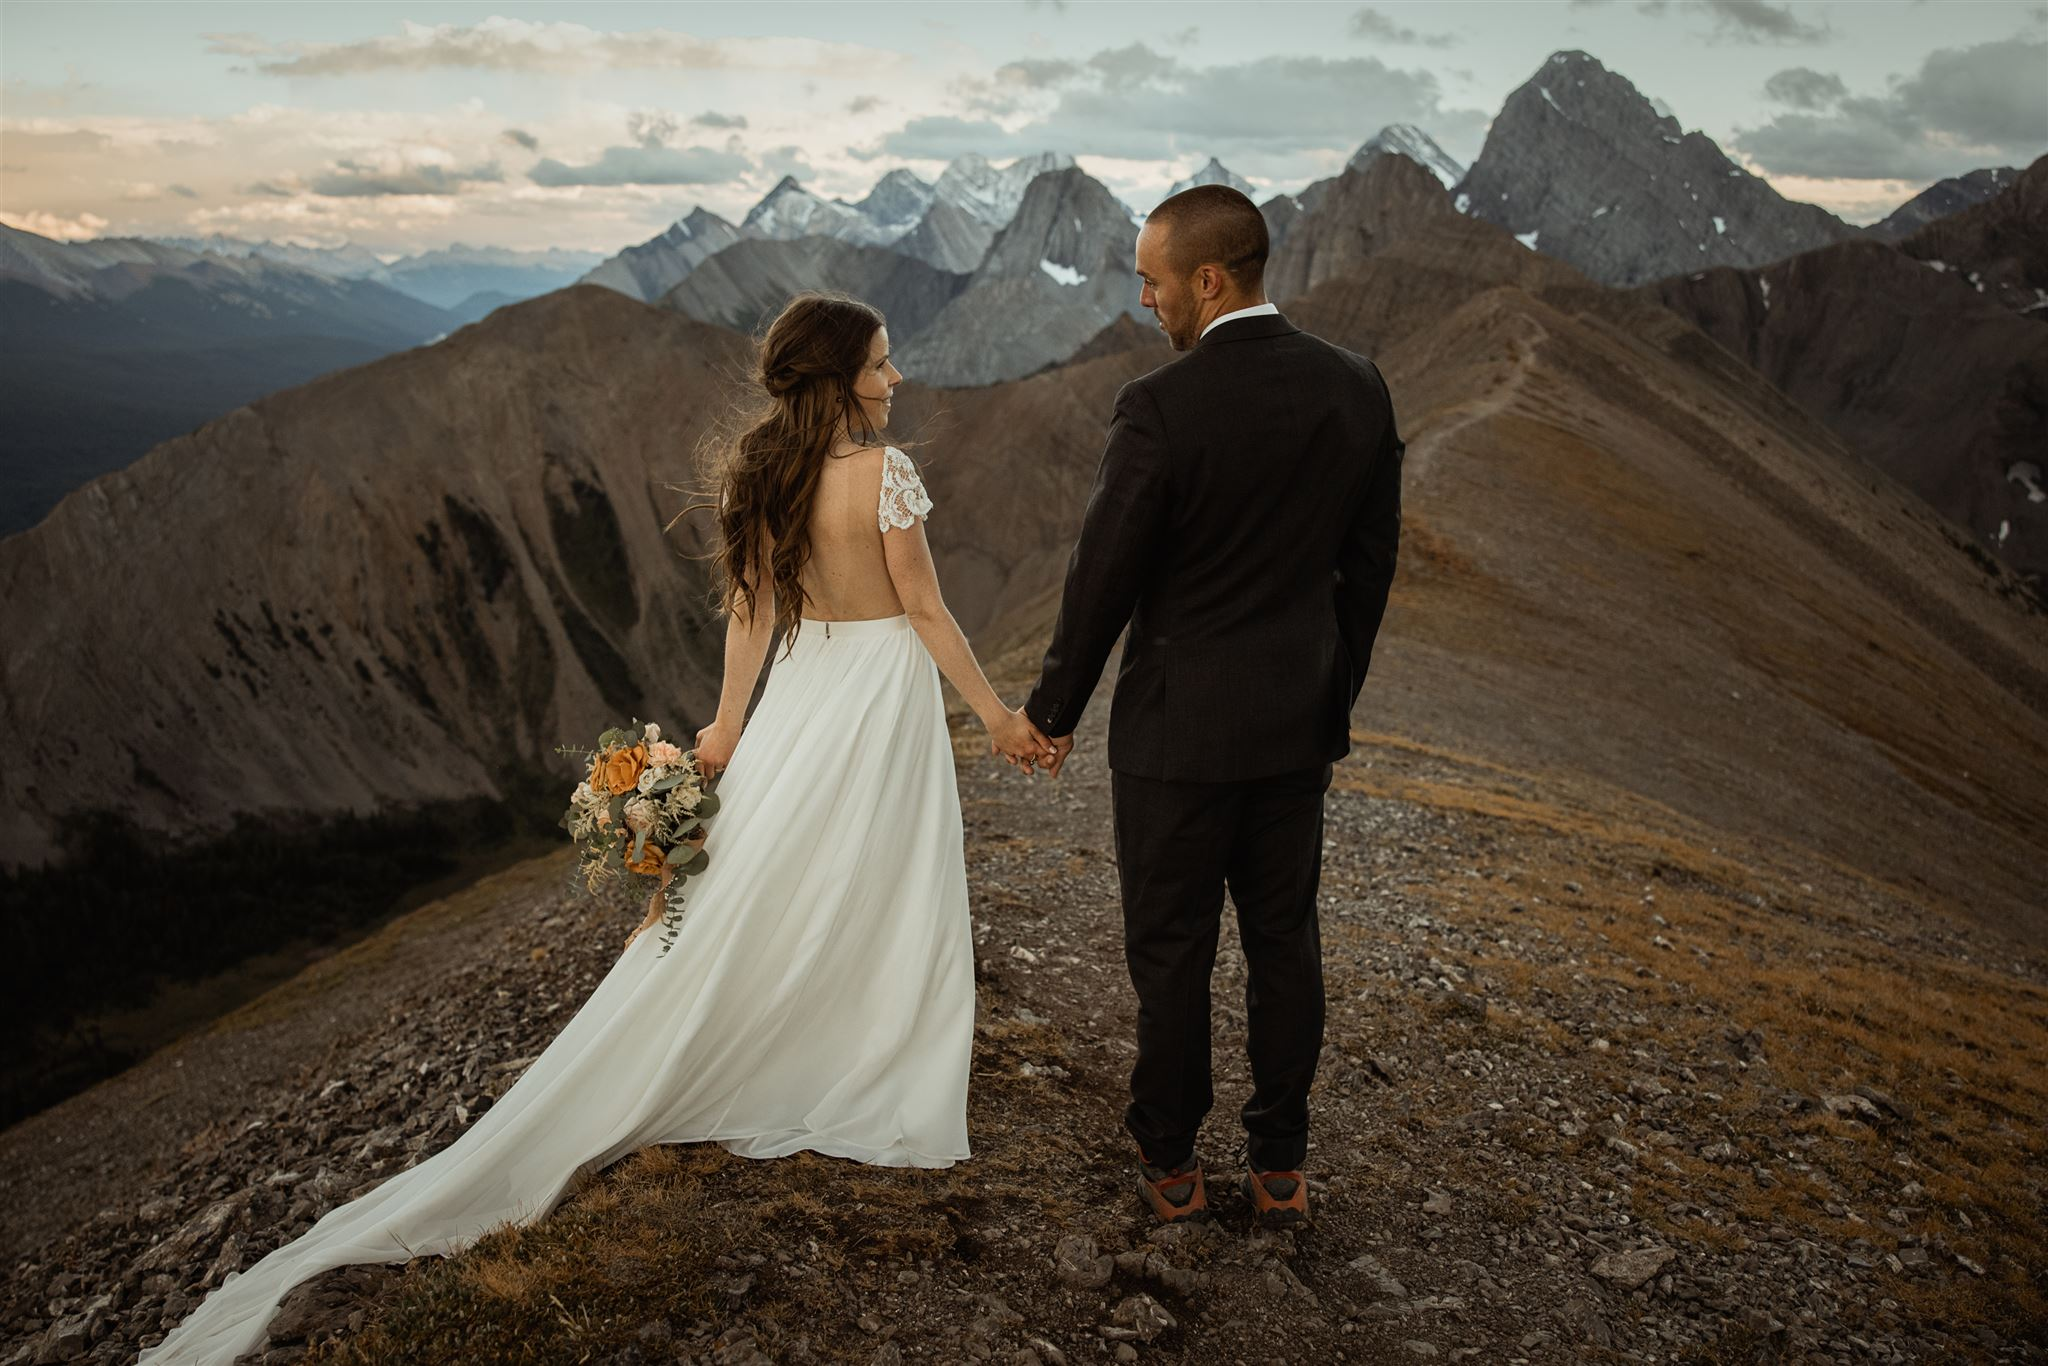 Photo by: Willow and Wolf Weddings